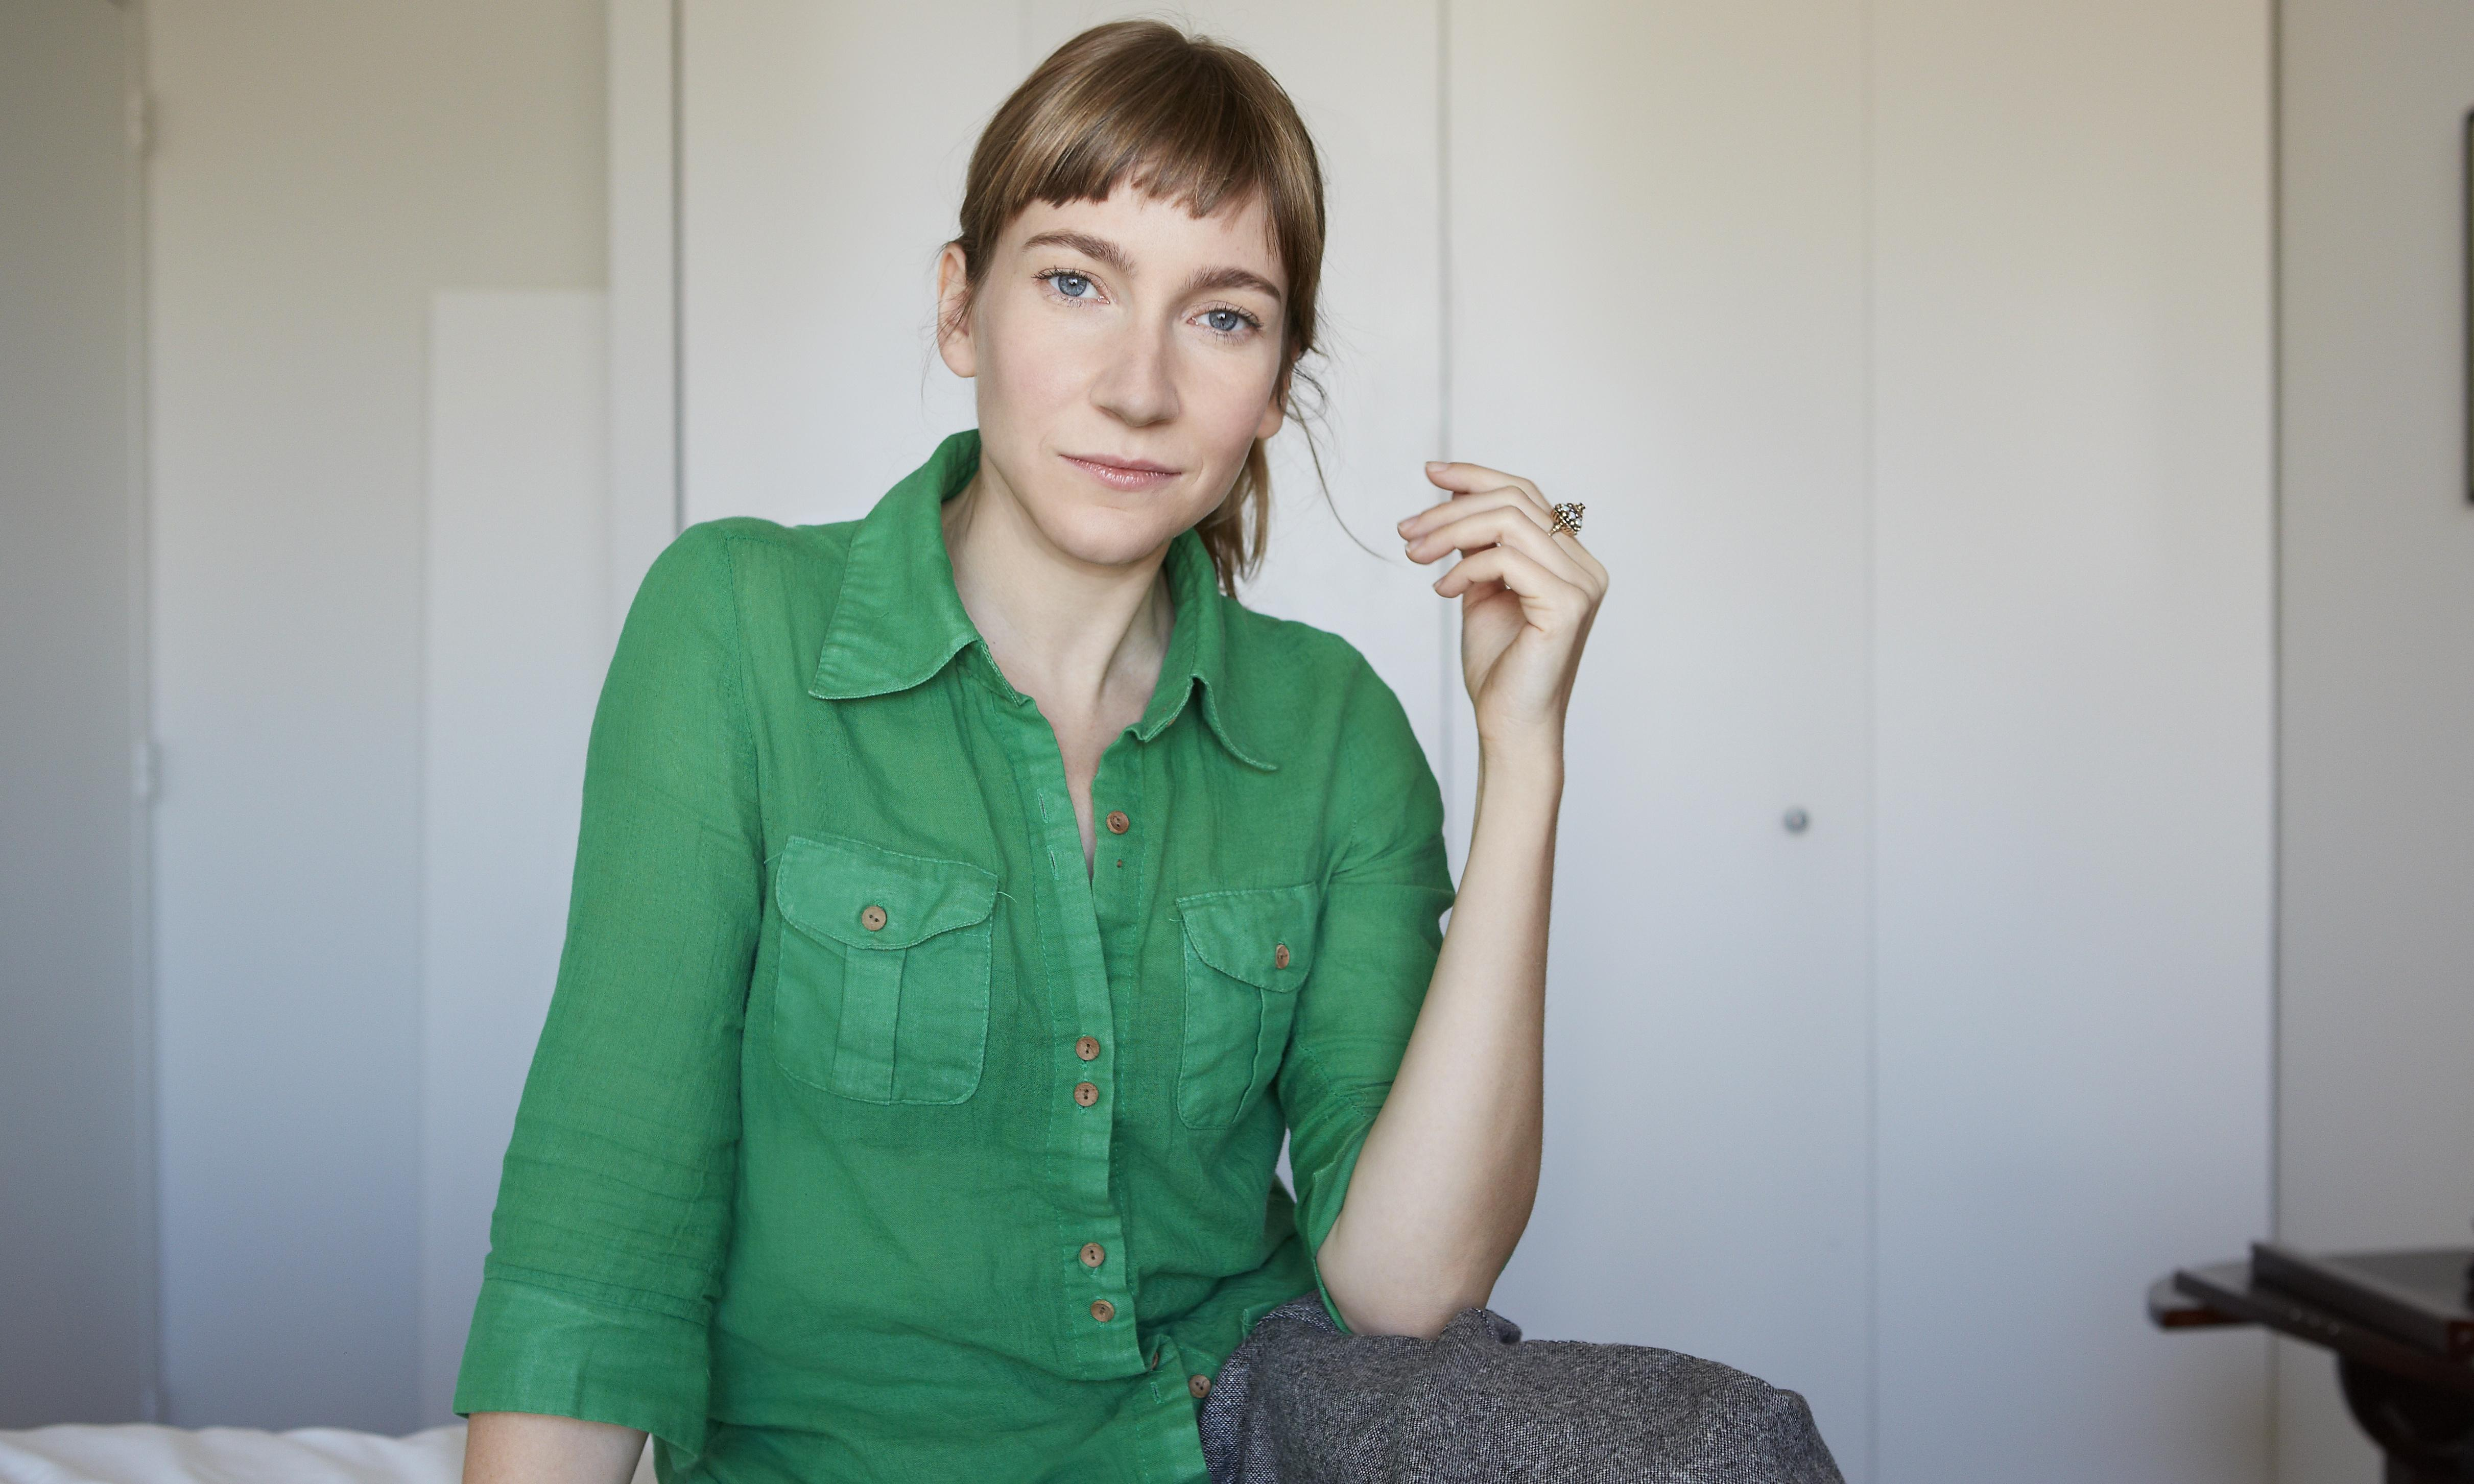 Sheila Heti: 'When people laugh while reading, they're often showing off'